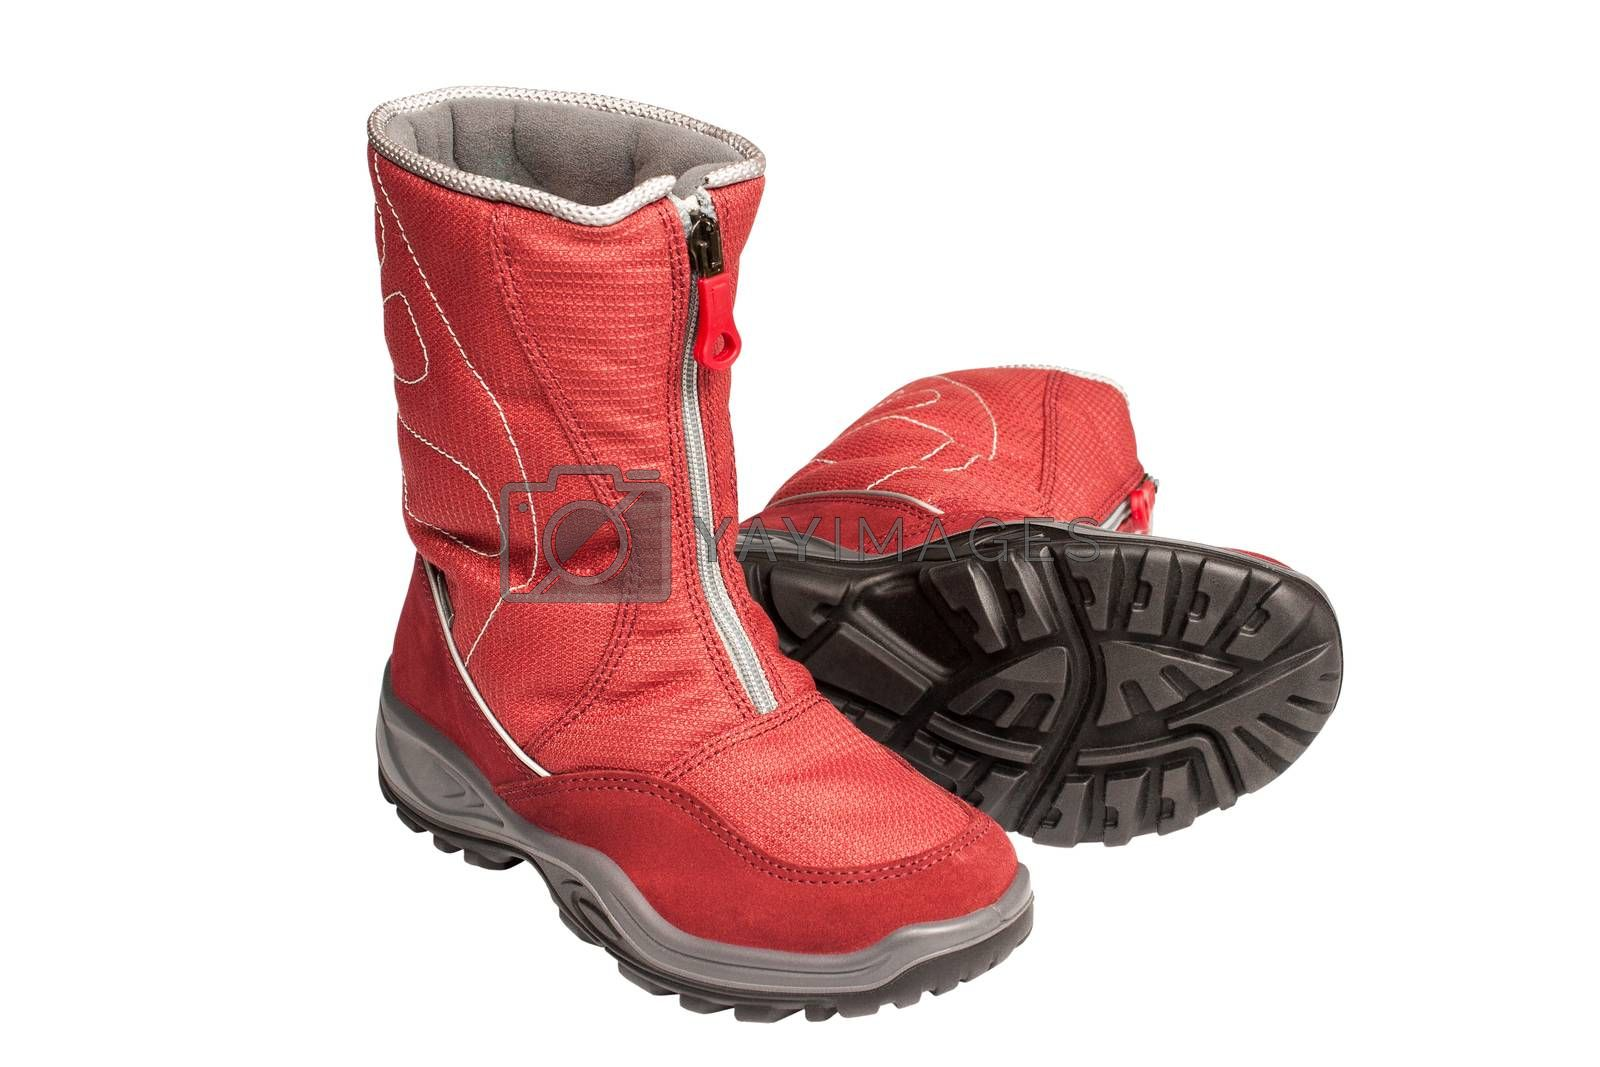 two children's red waterproof boots on a white background